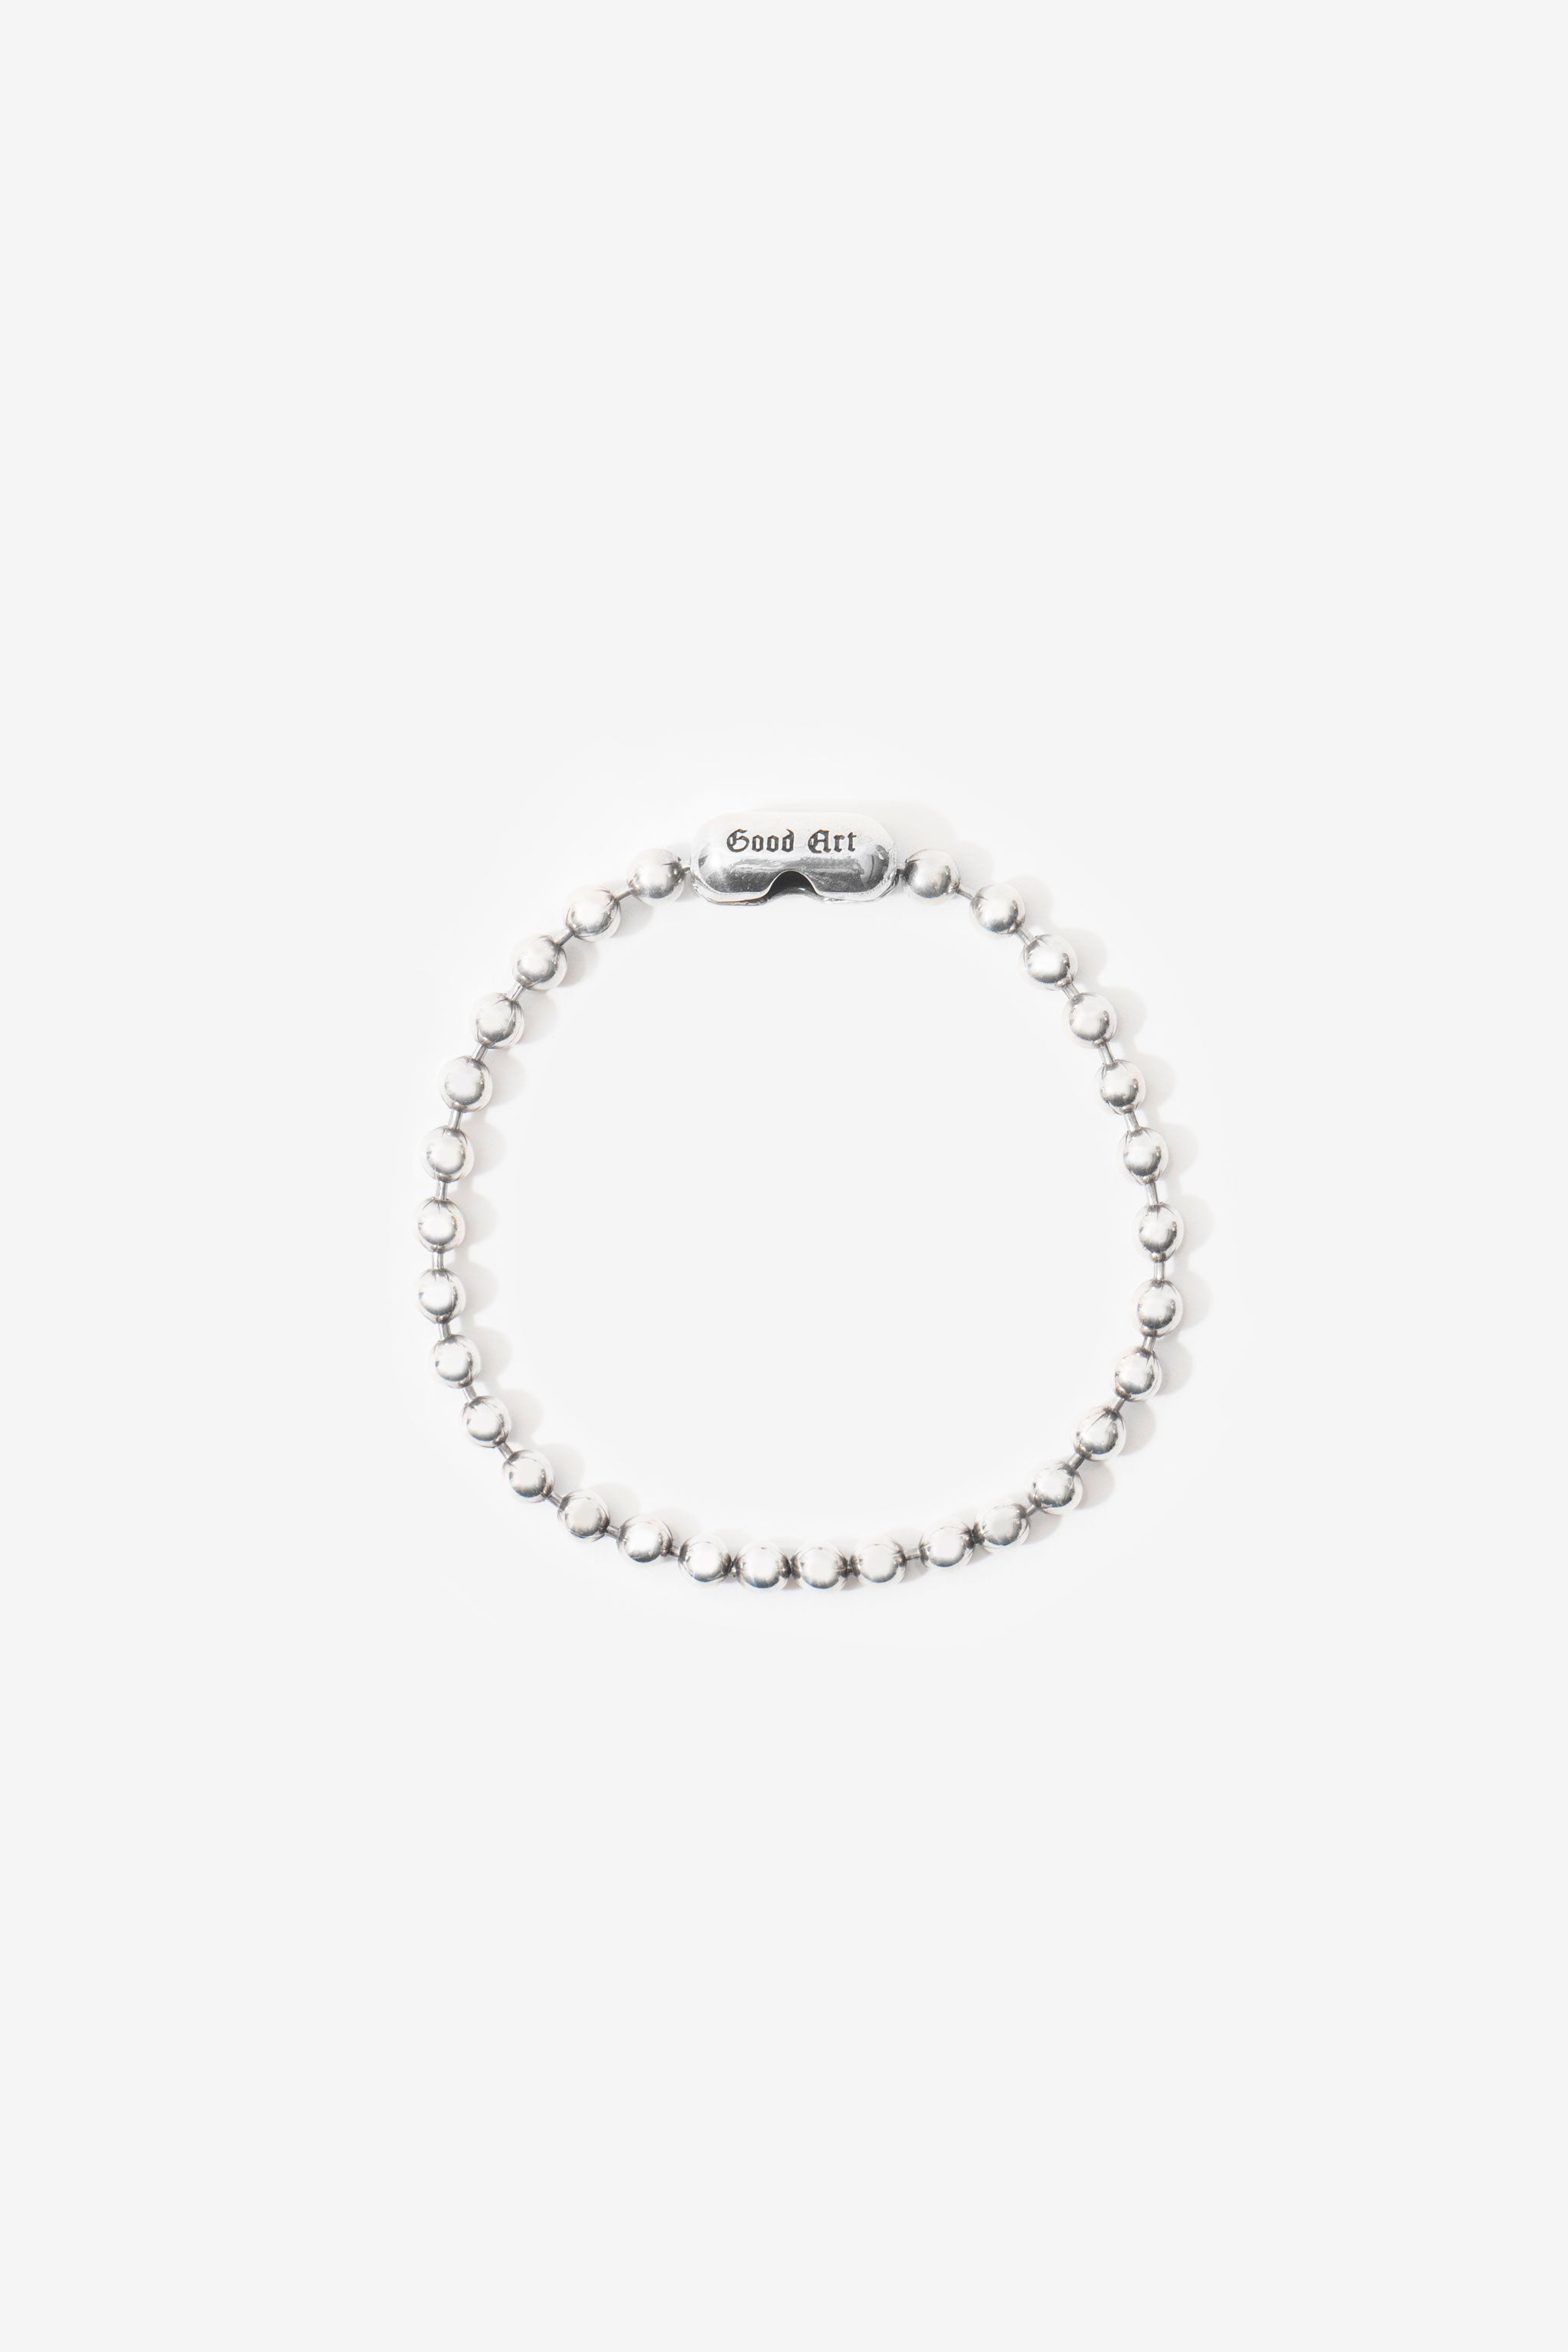 Good Art Hlywd for Goodfight Ball Chain Bracelet